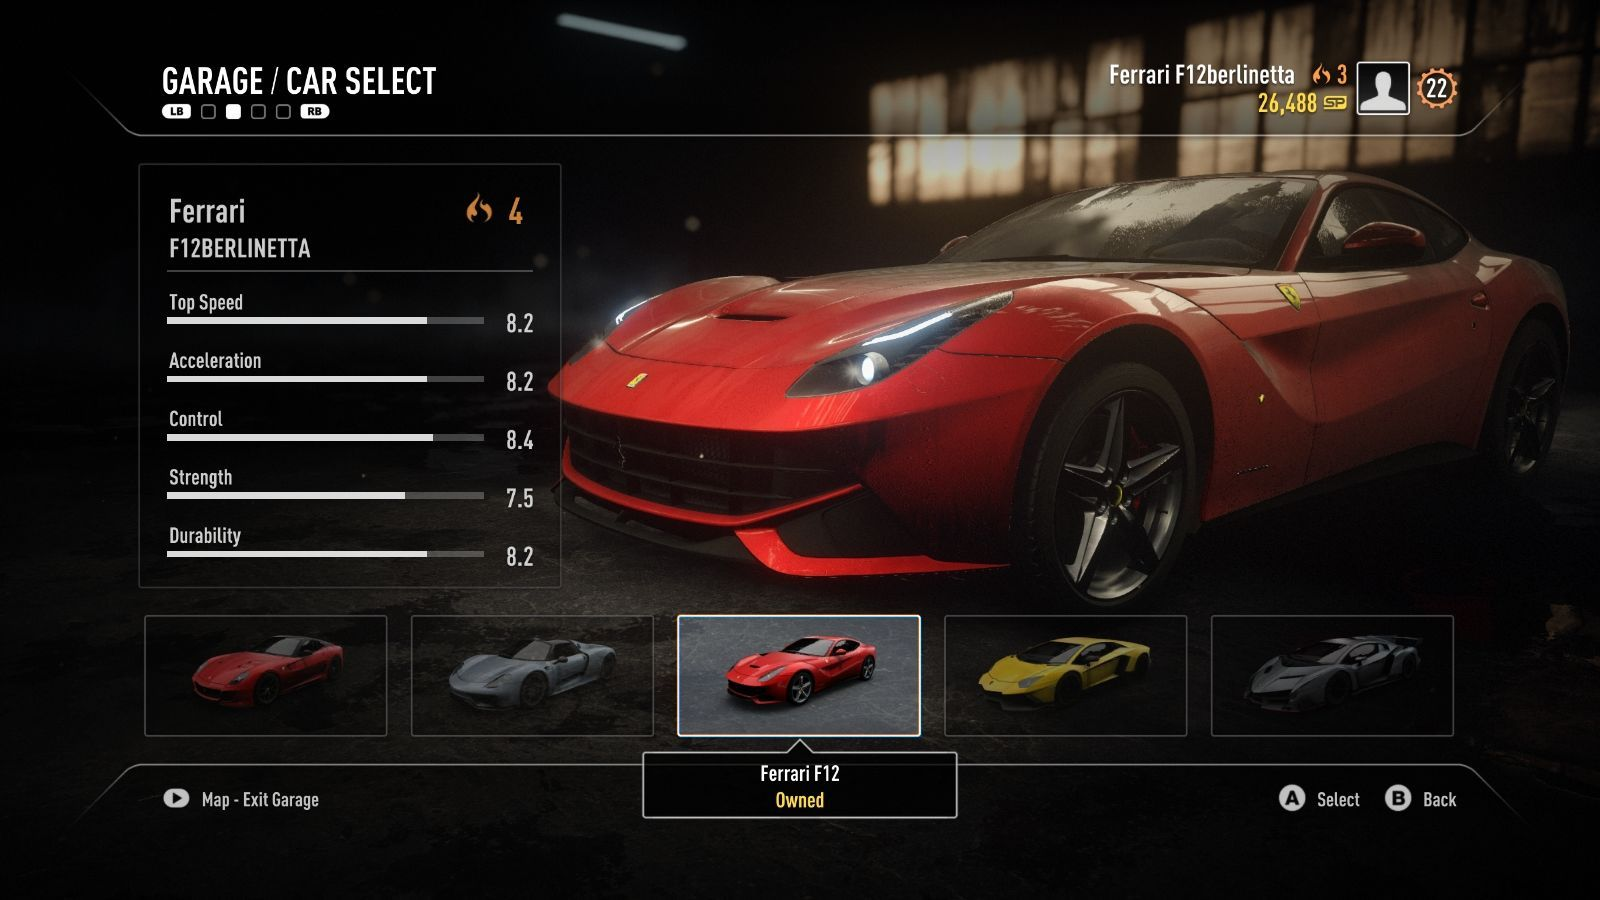 Nfs Rivals Need For Speed Cars Car Games Need For Speed Games